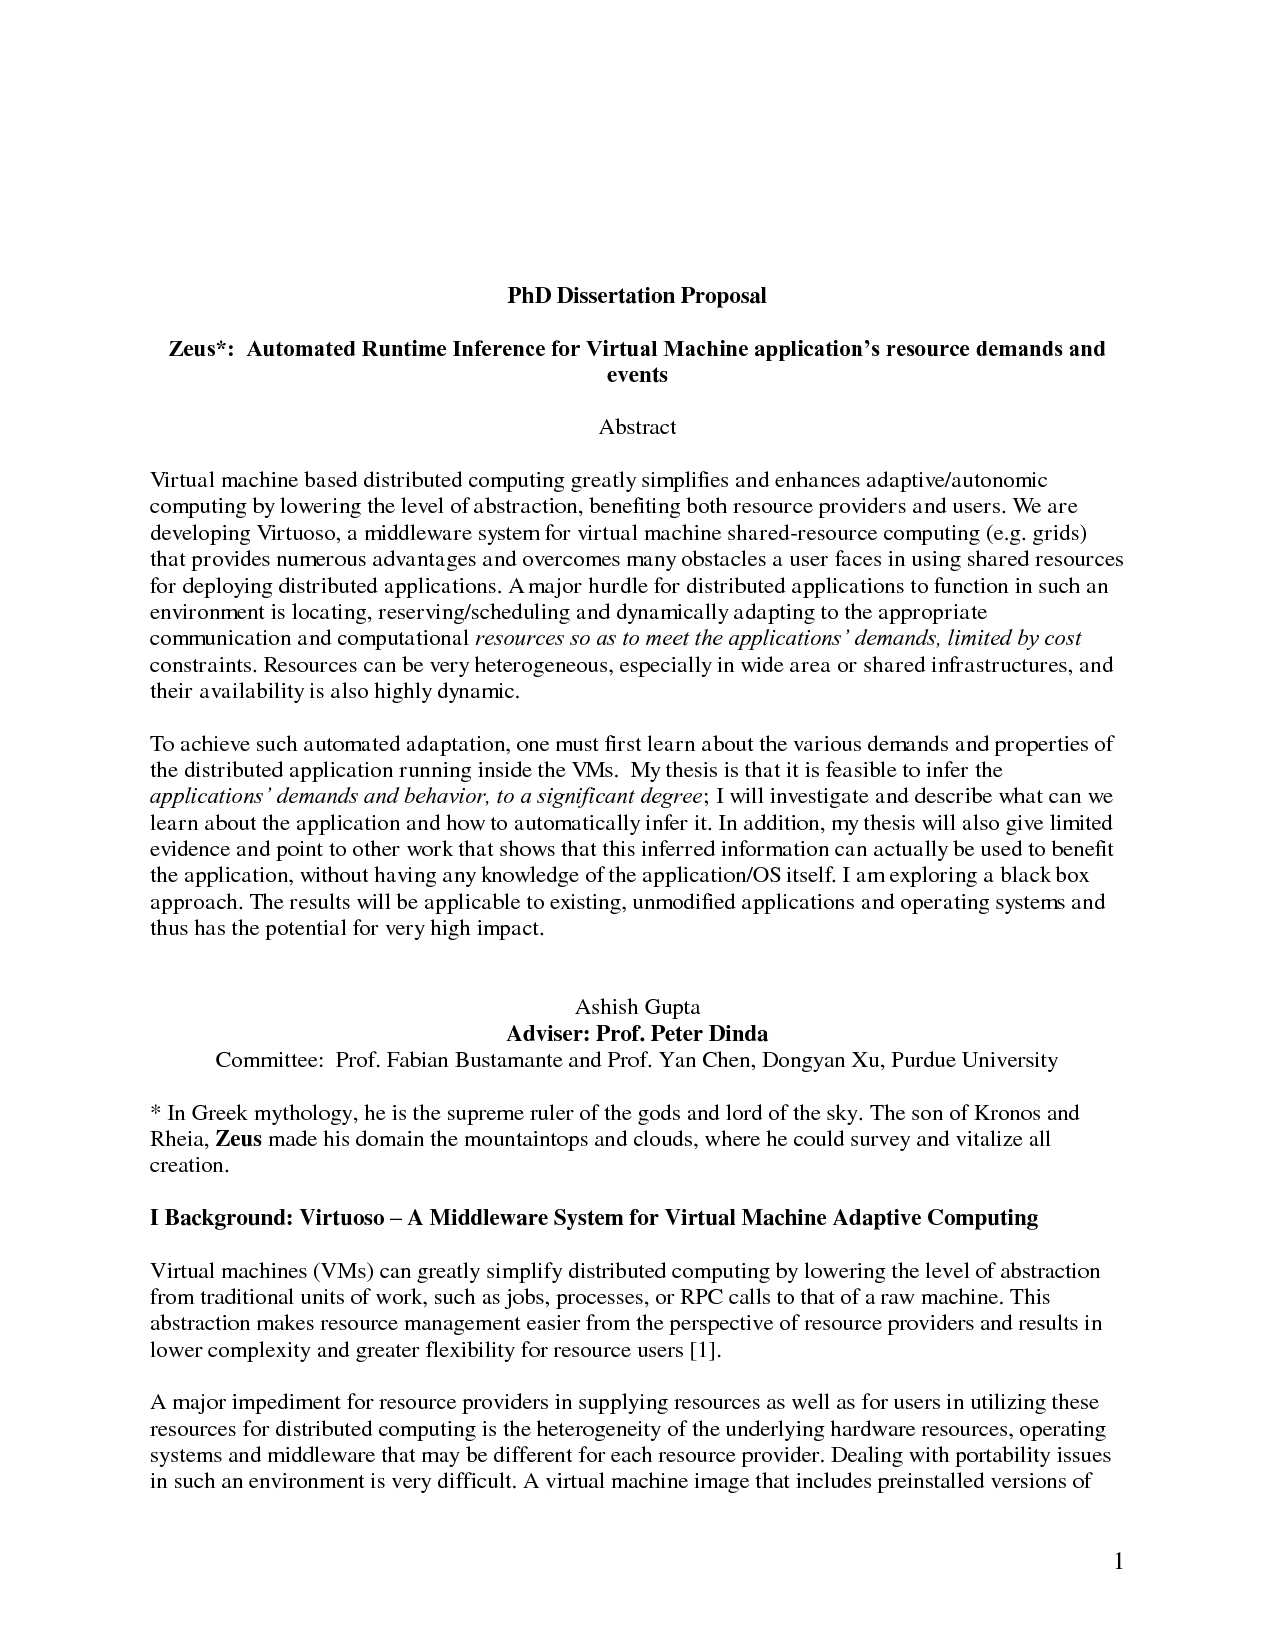 human resource thesis proposal Human resources is essential to corporate governance great hr teams multiply the effectiveness of your most valuable resources- people you almost certainly have invested in experienced minds to guide your brand onward and upward- technical, marketing, and business minds who will help you avoid the business world's many pitfalls.